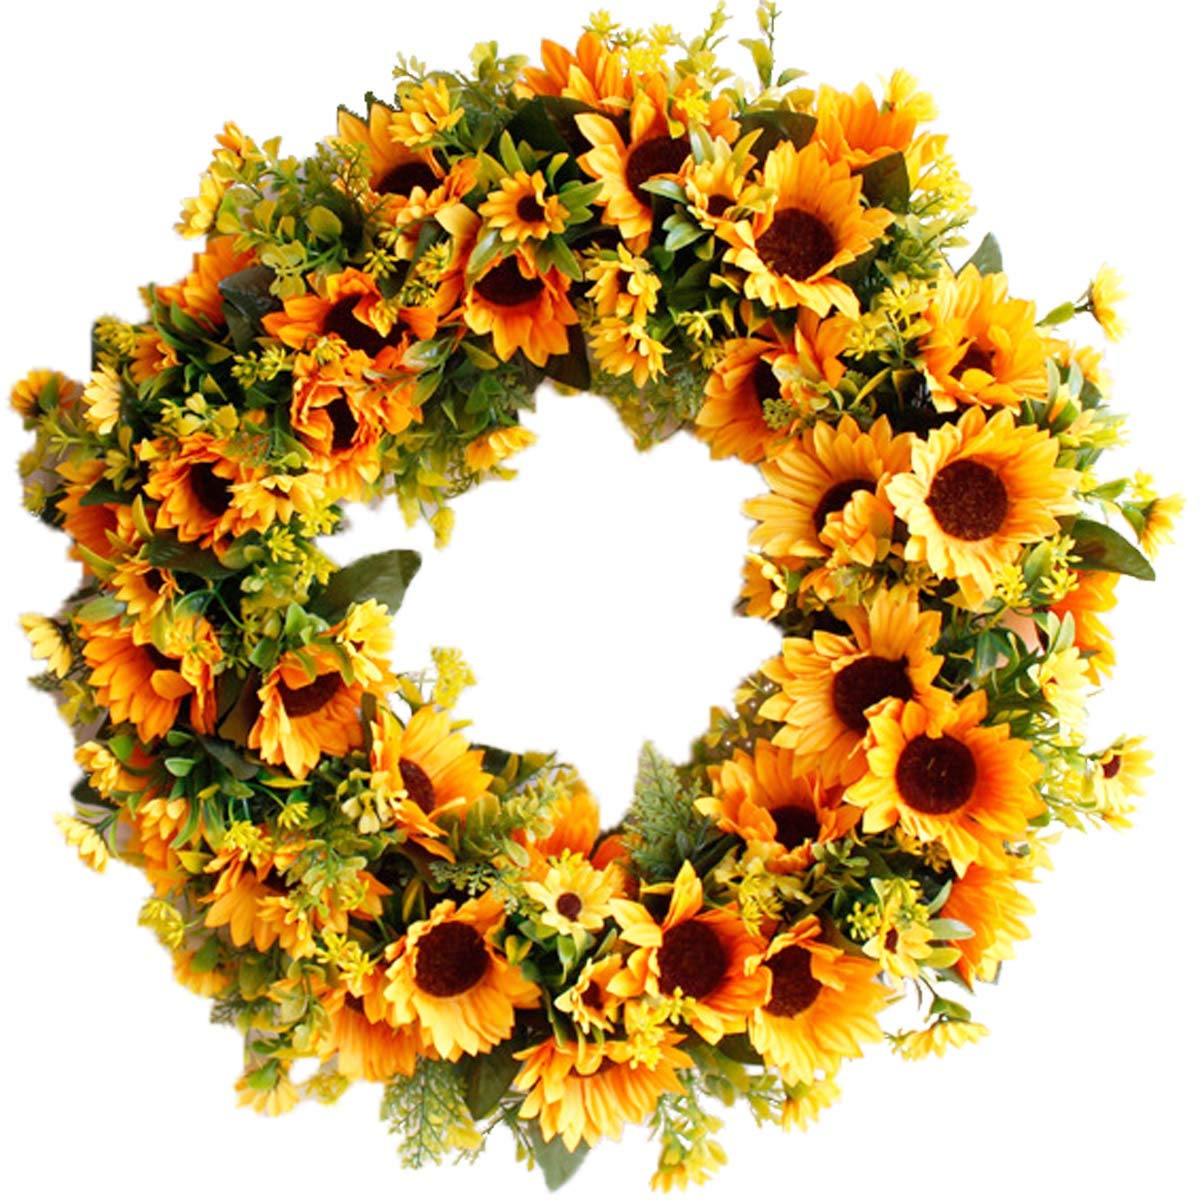 Pauwer 20'' Large Sunflower Wreath for Front Door Silk Artificial Yellow Sunflower with Green Leaves Door Wreath Indoor Outdoor (20'' Sunflower)